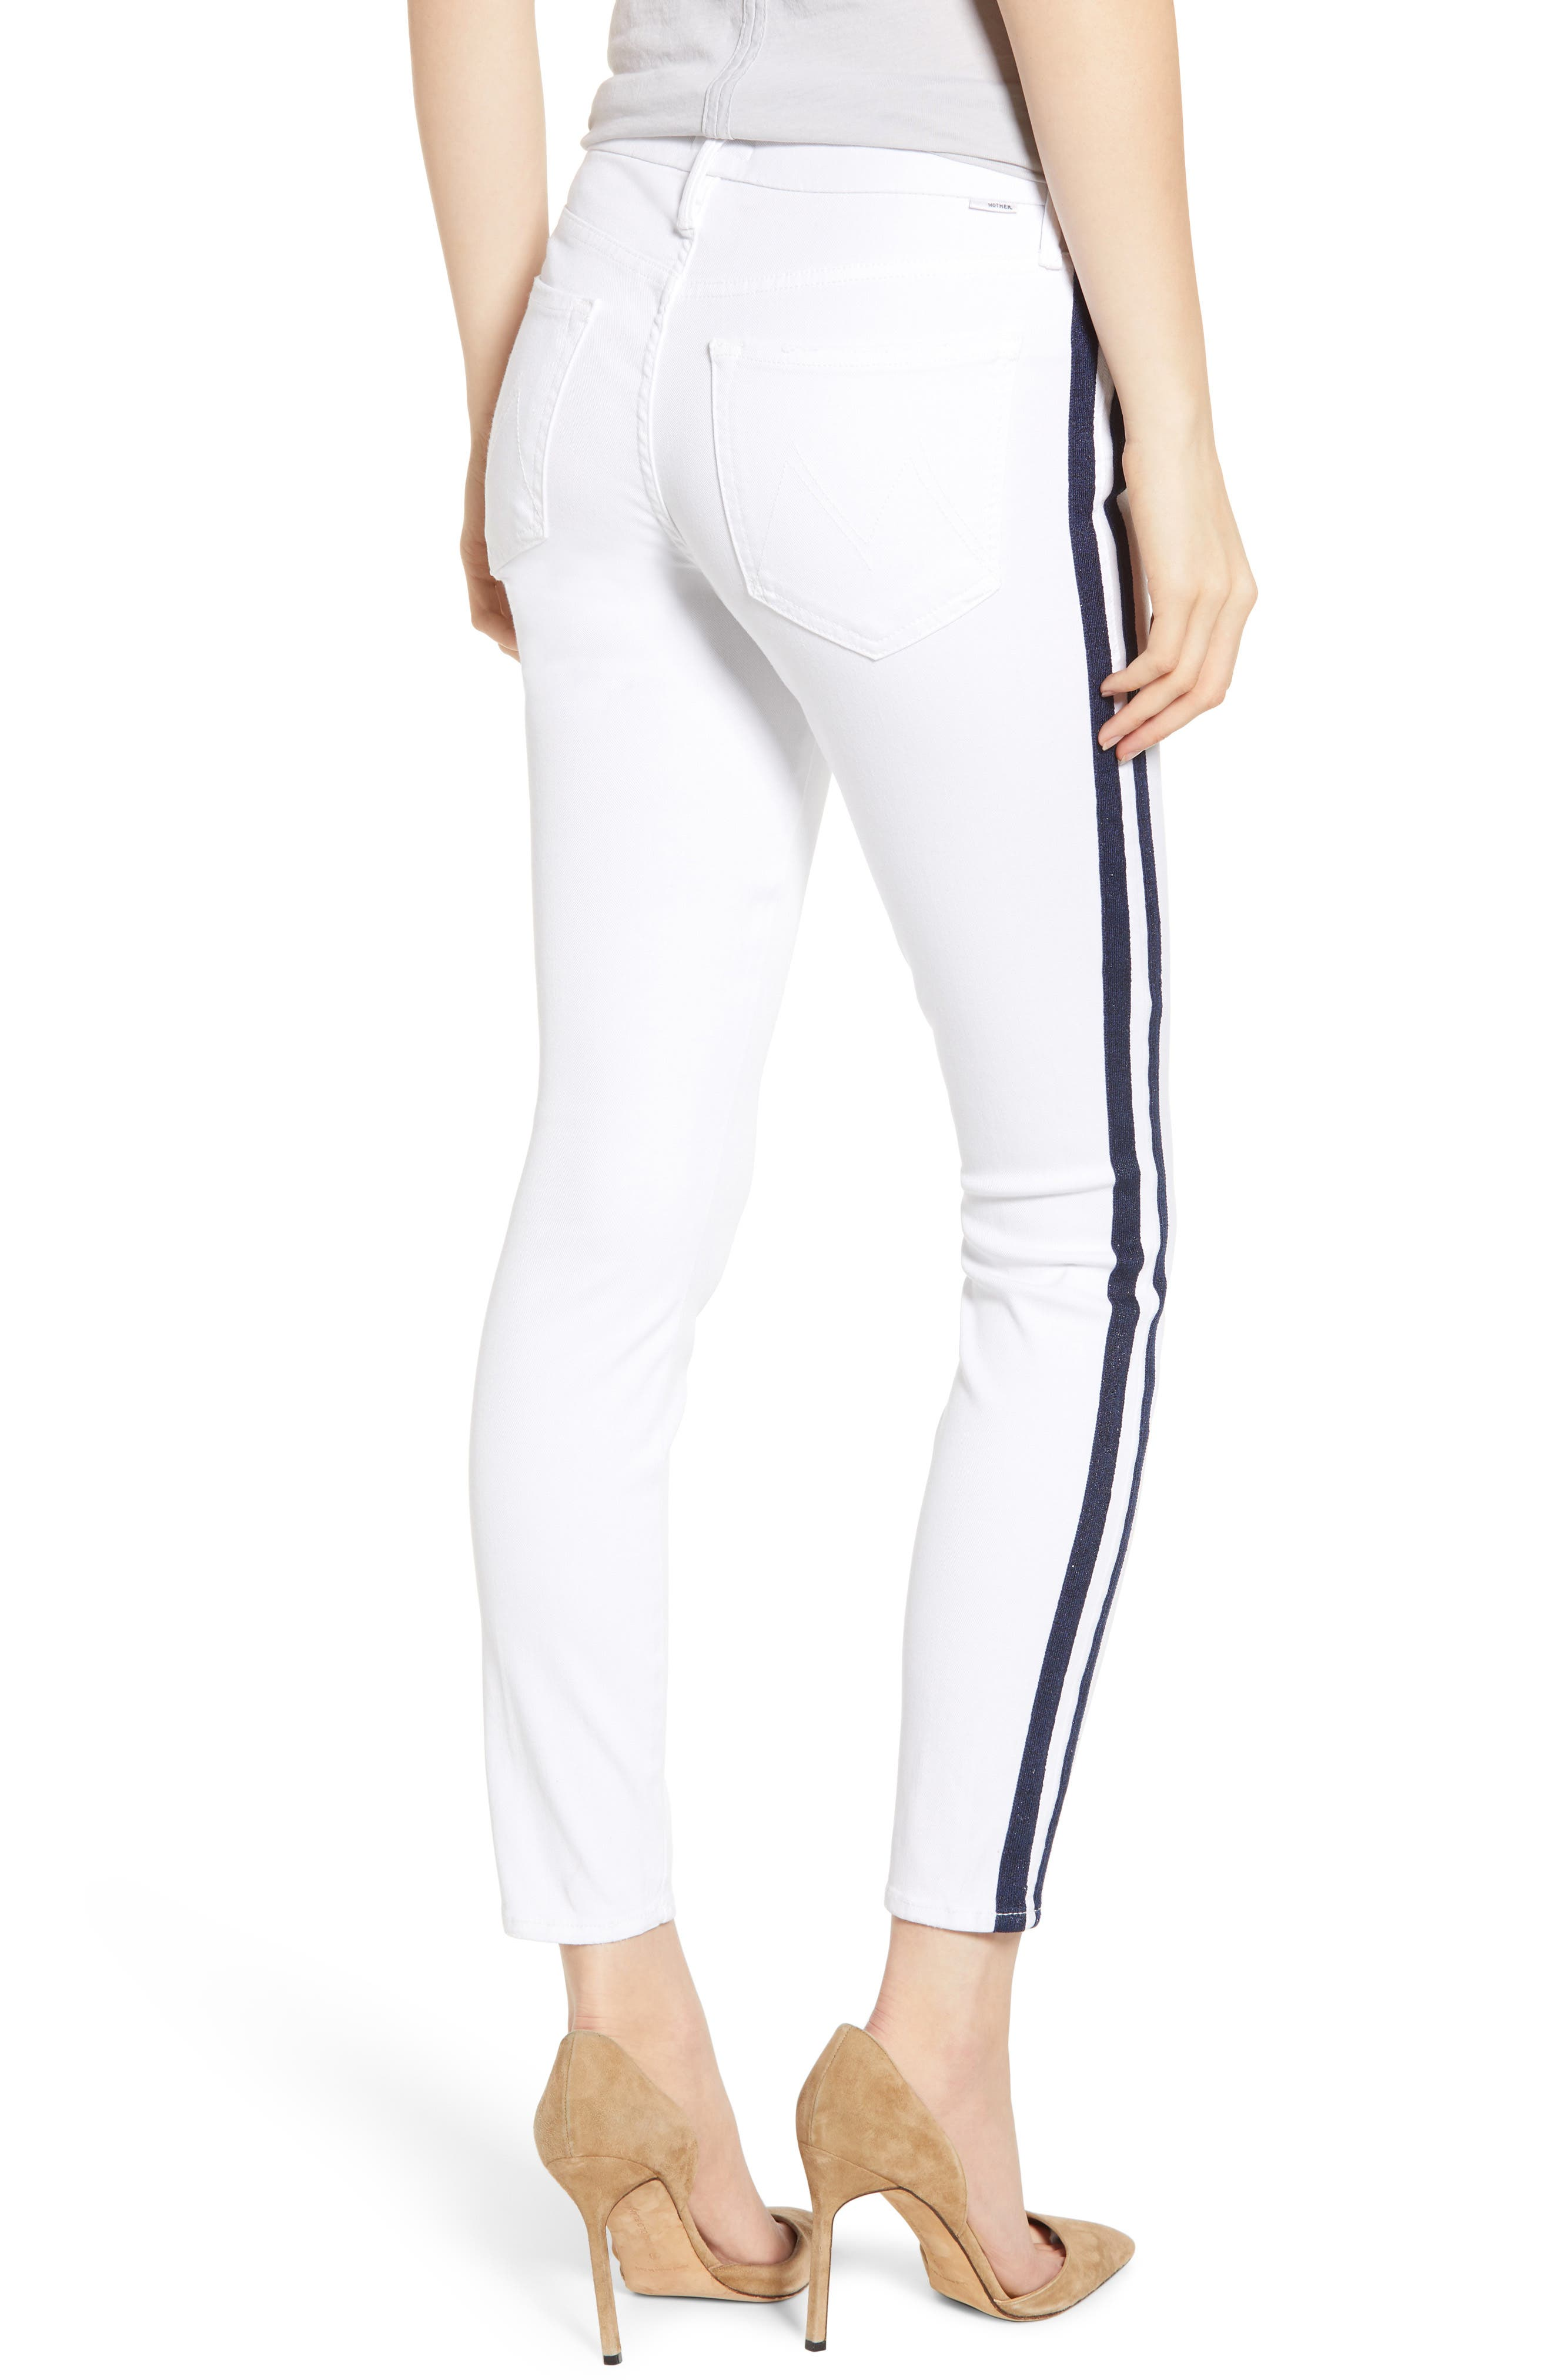 MOTHER, The Looker Stripe Ankle Skinny Jeans, Alternate thumbnail 2, color, 100